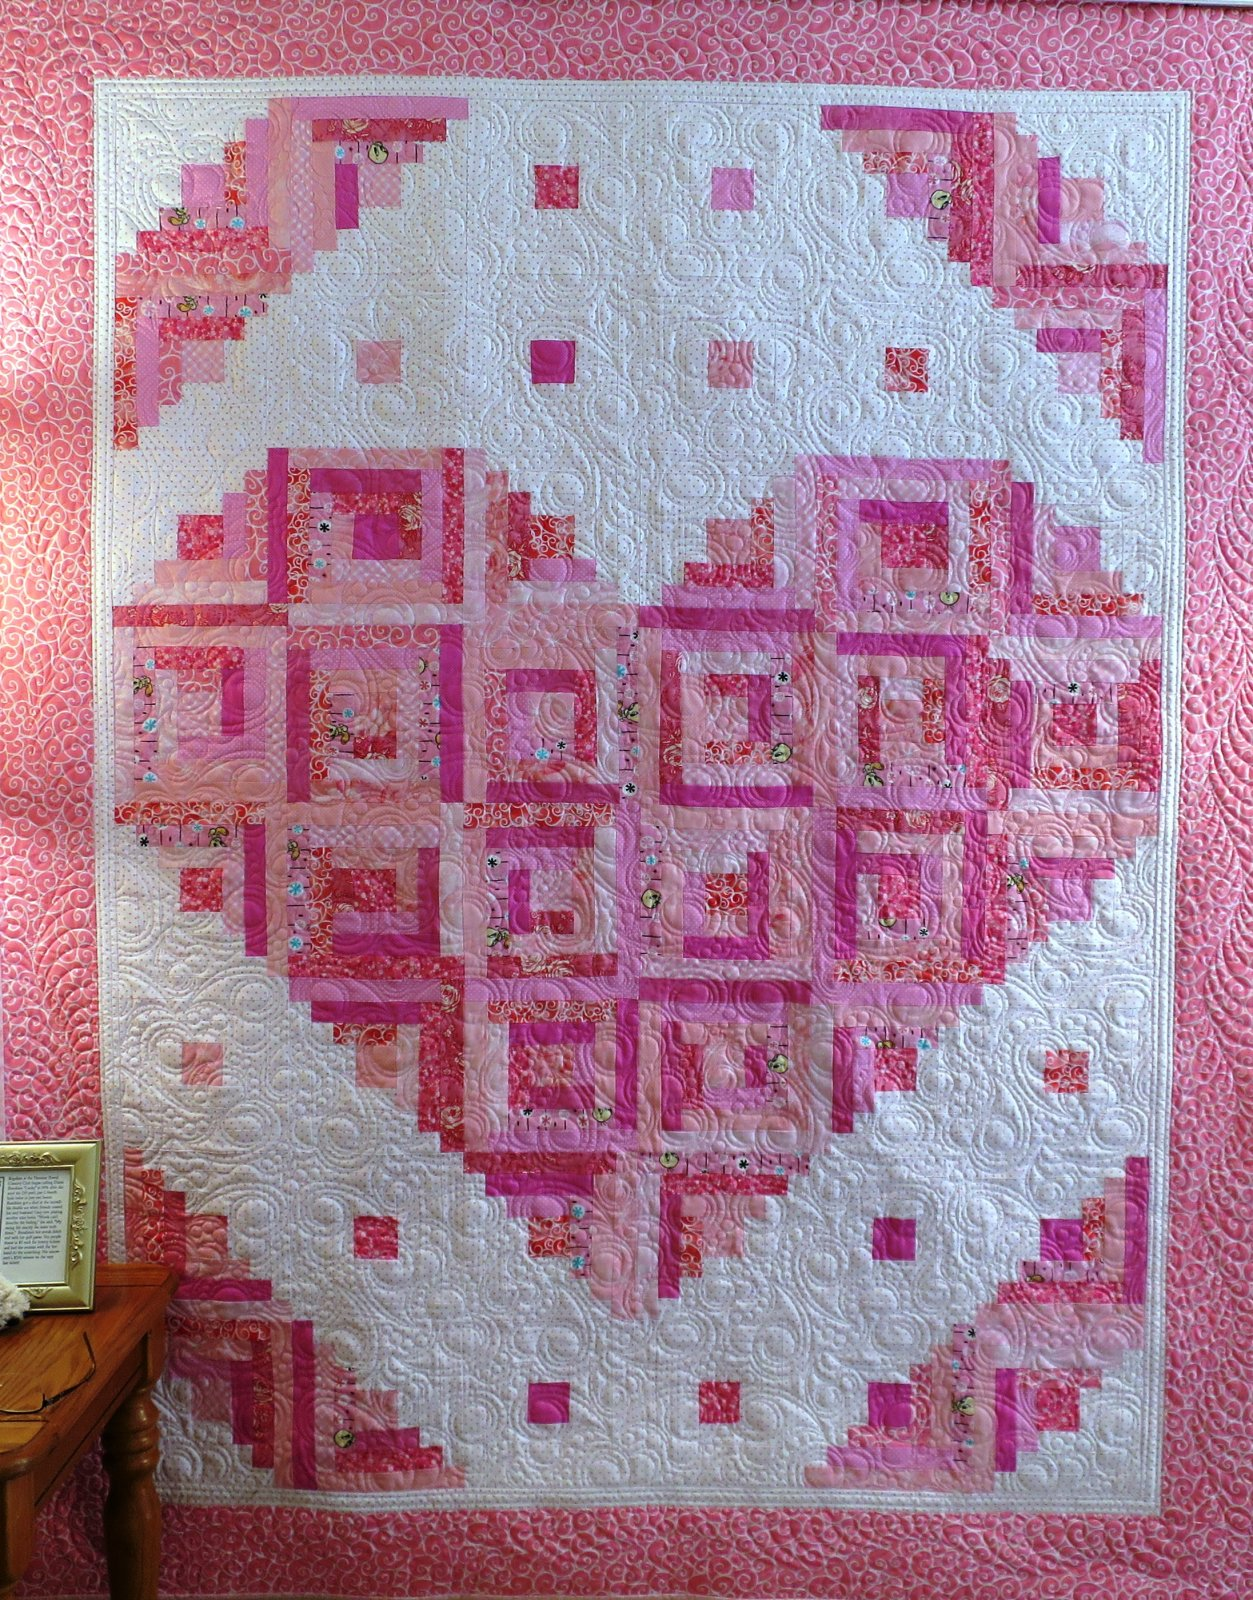 Loving Heart Quilt Pattern Digital Download #441